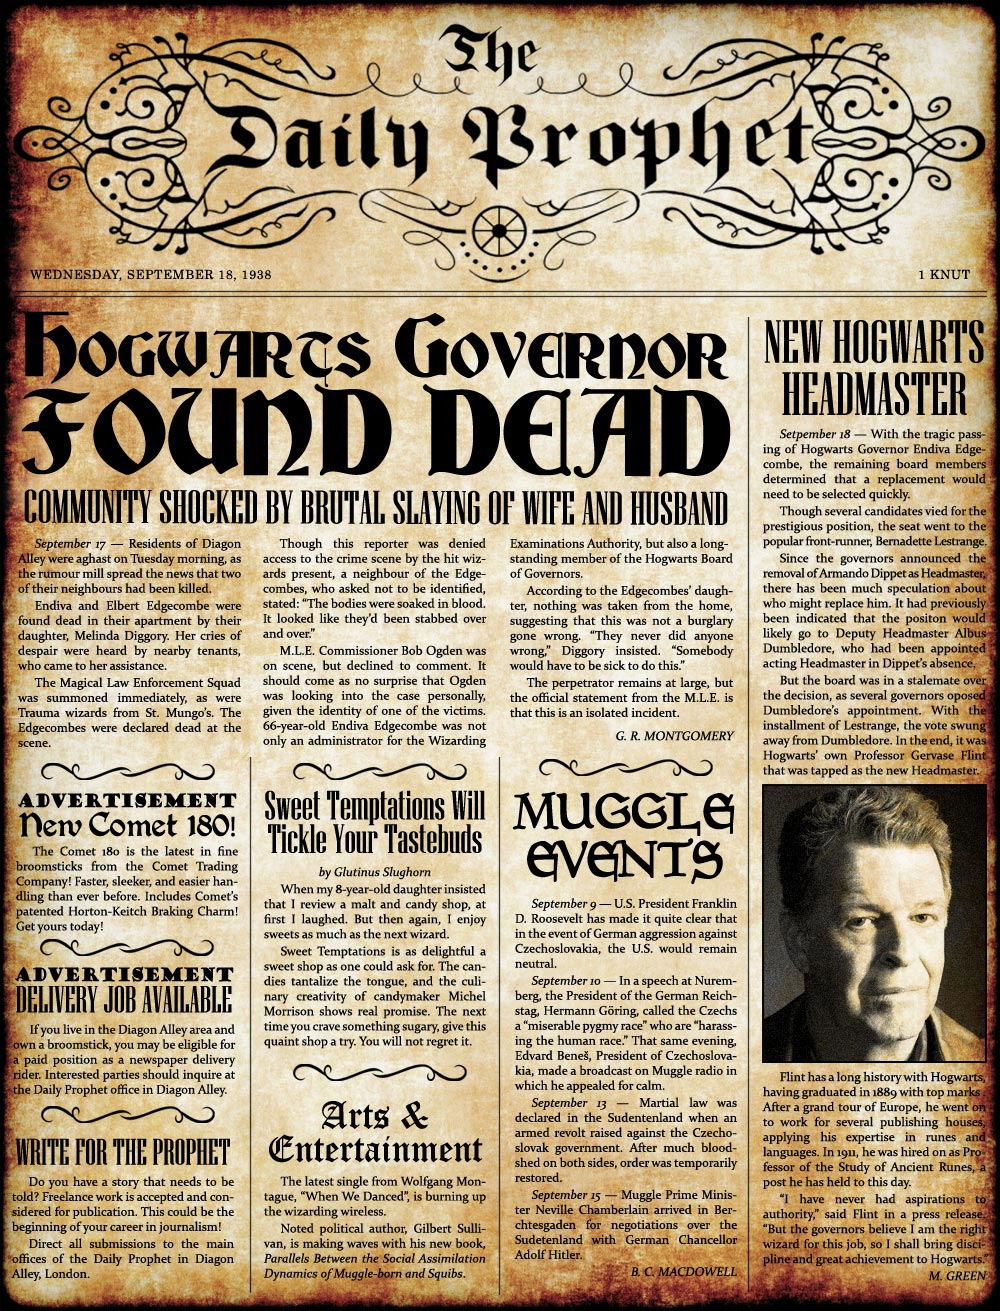 1938-09-18) The Daily Prophet - Hogwarts Governor Found Dead ...